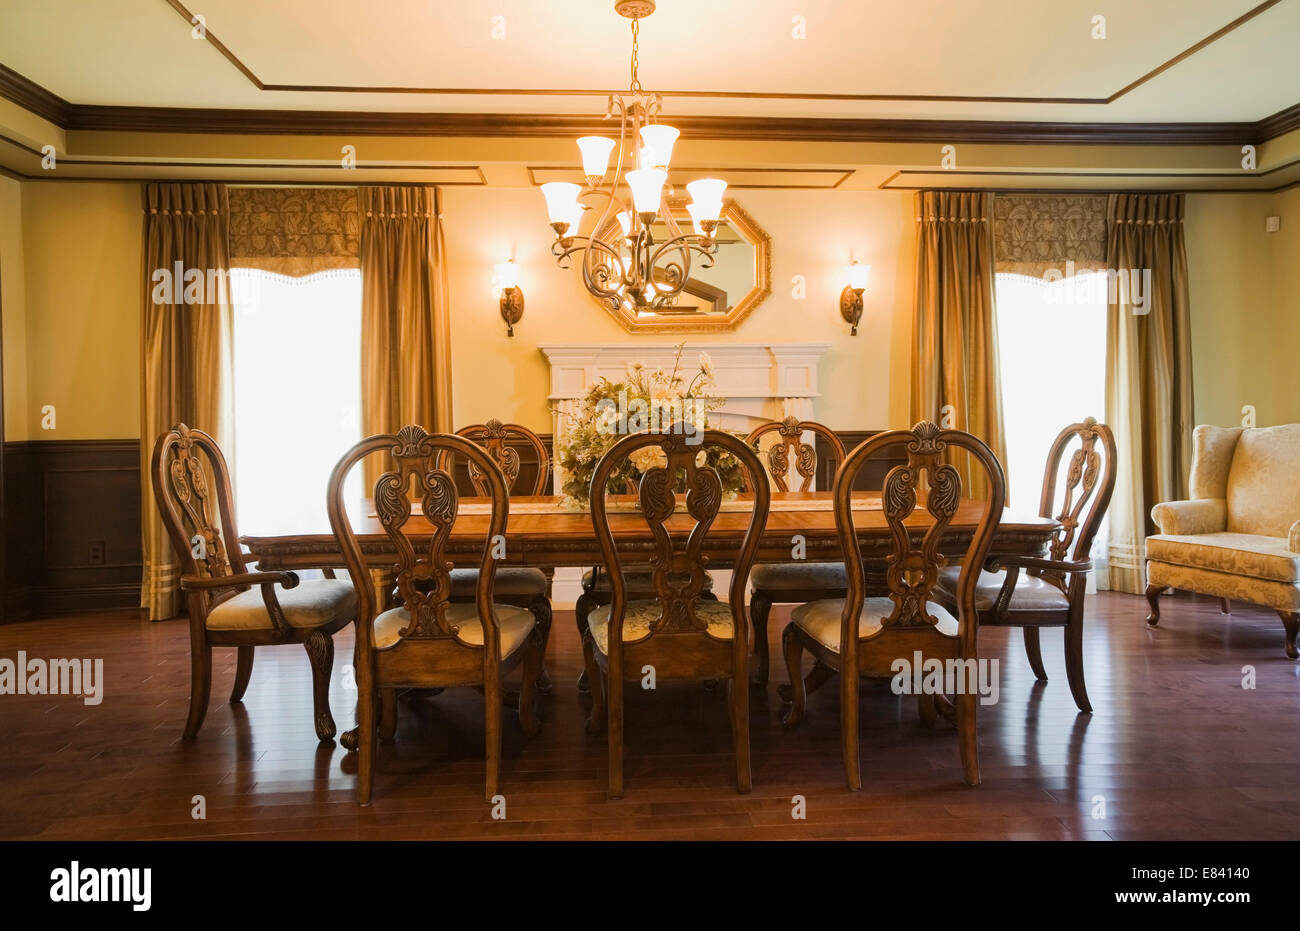 Old Fashioned Dining Room Stockfotos & Old Fashioned Dining Room ...